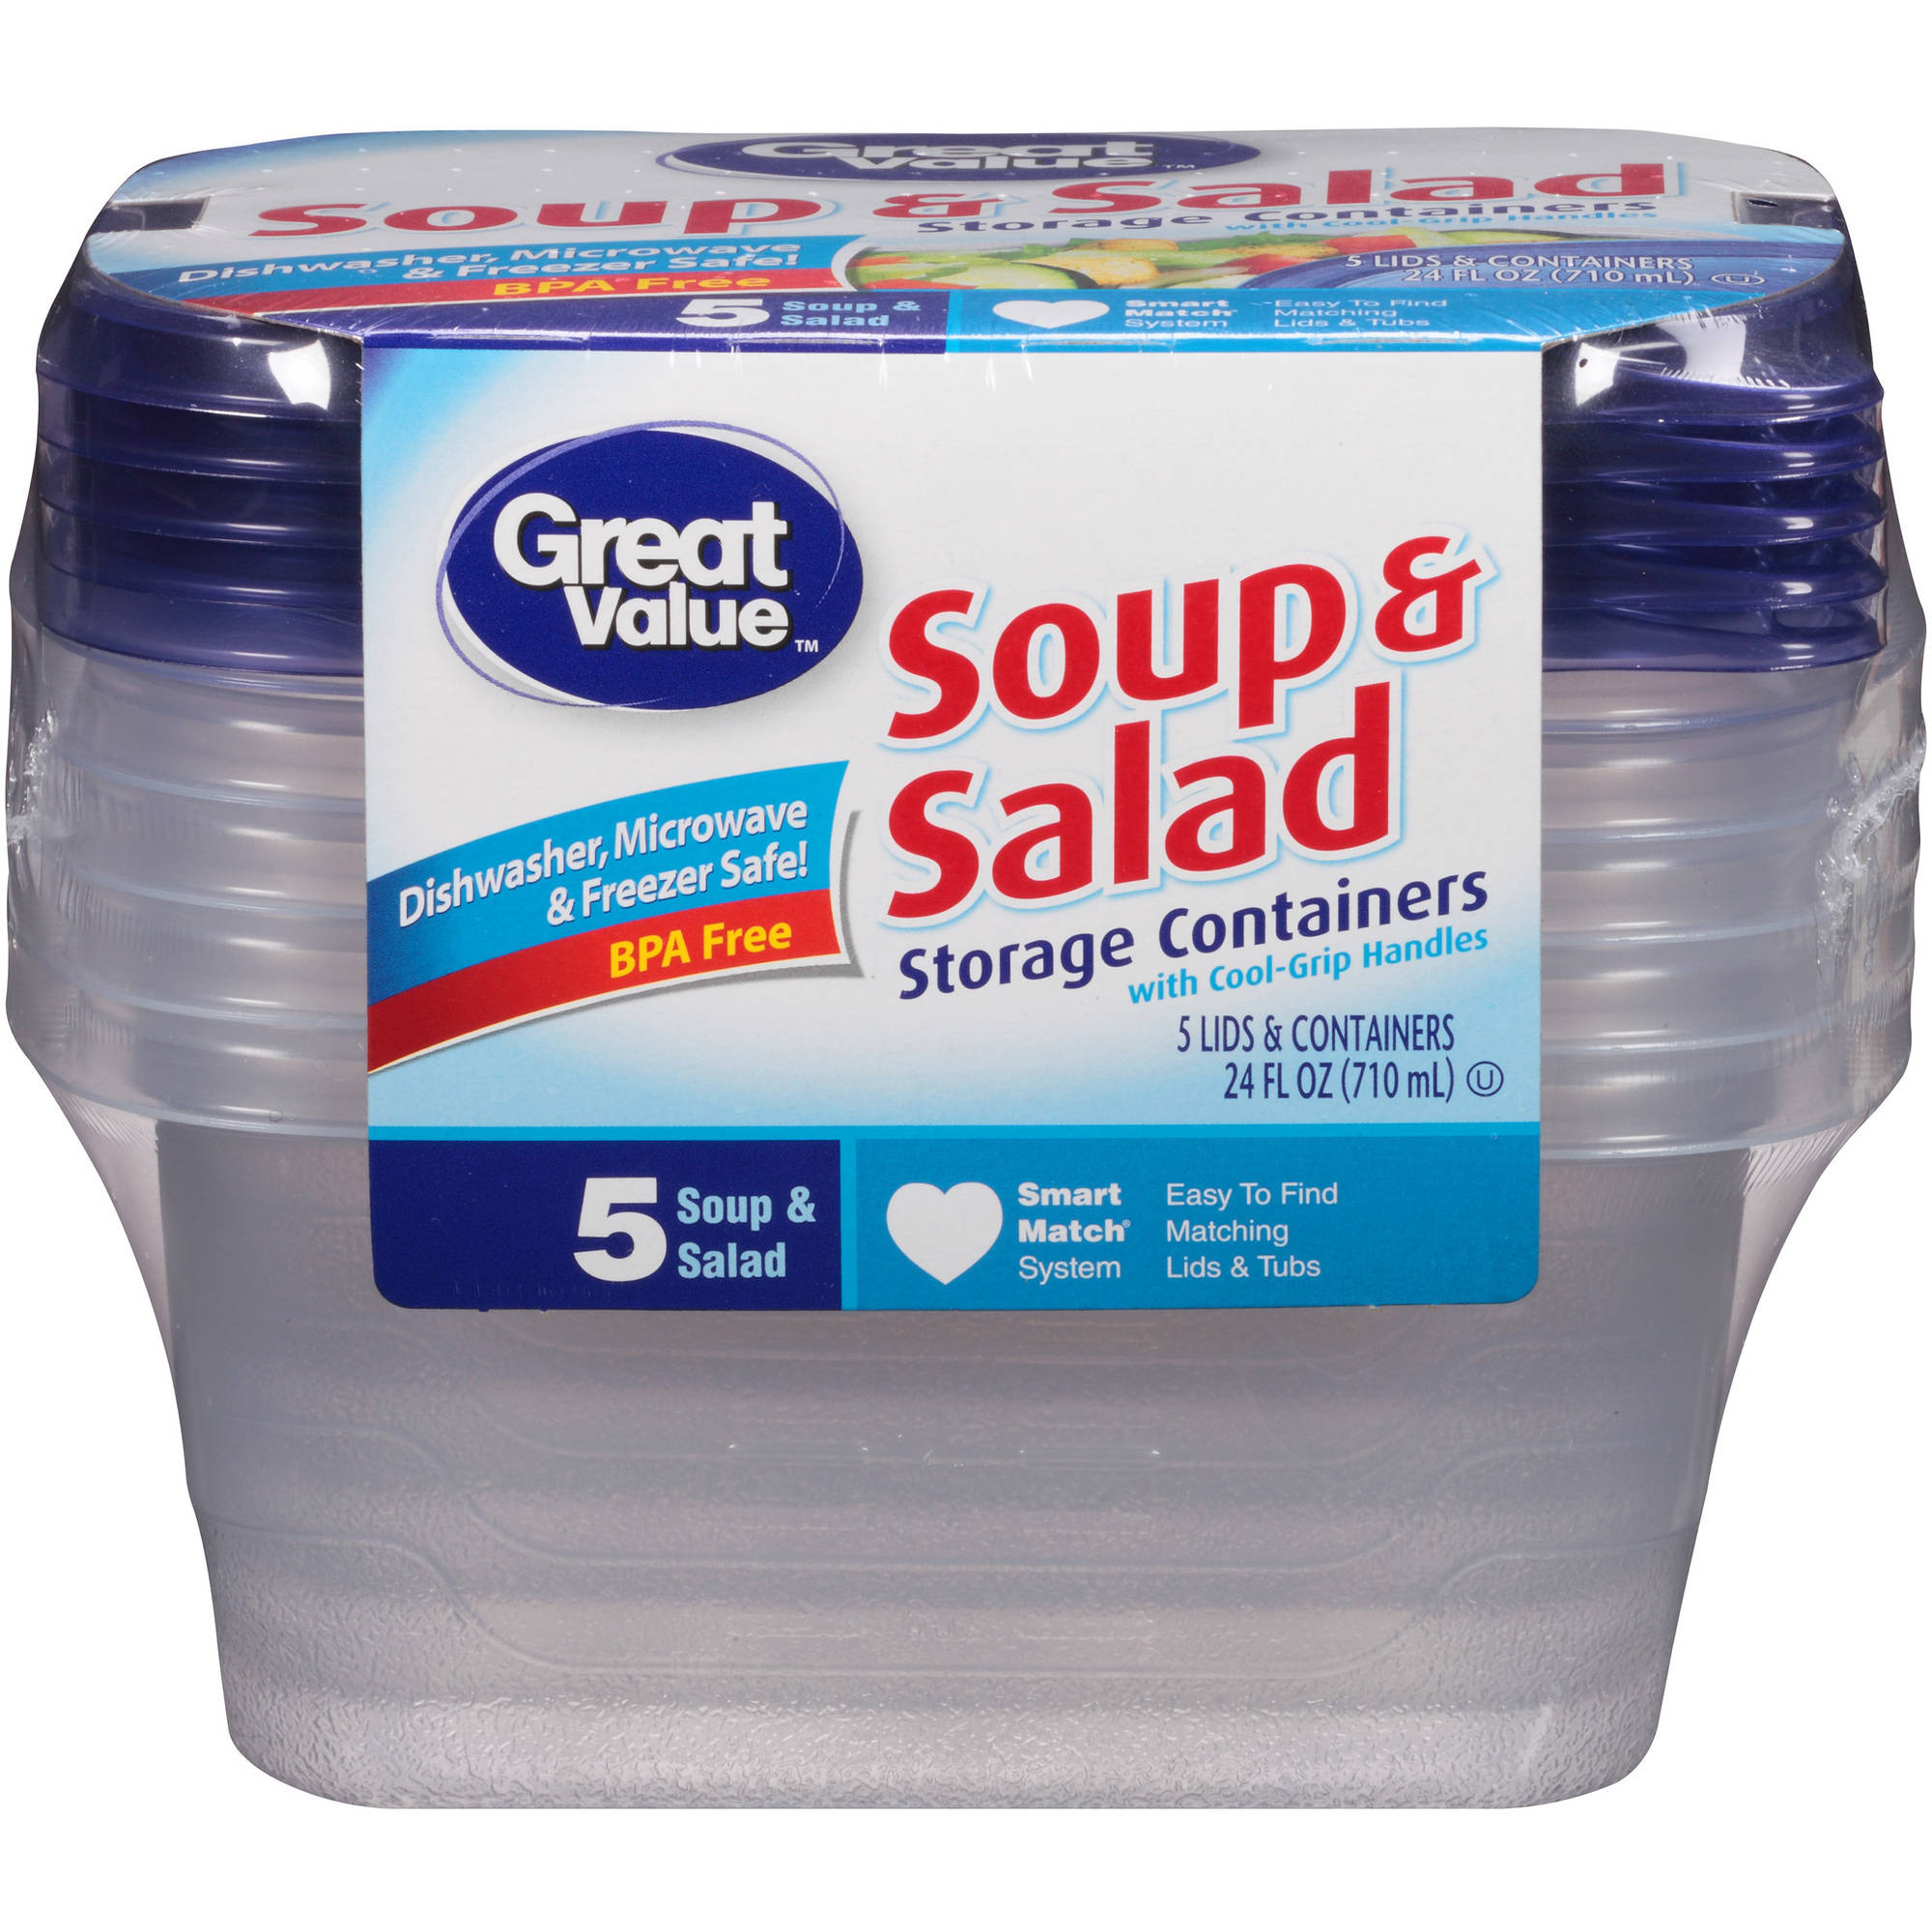 Great Value Soup and Salad Storage Containers, 24 fl oz, 5 count